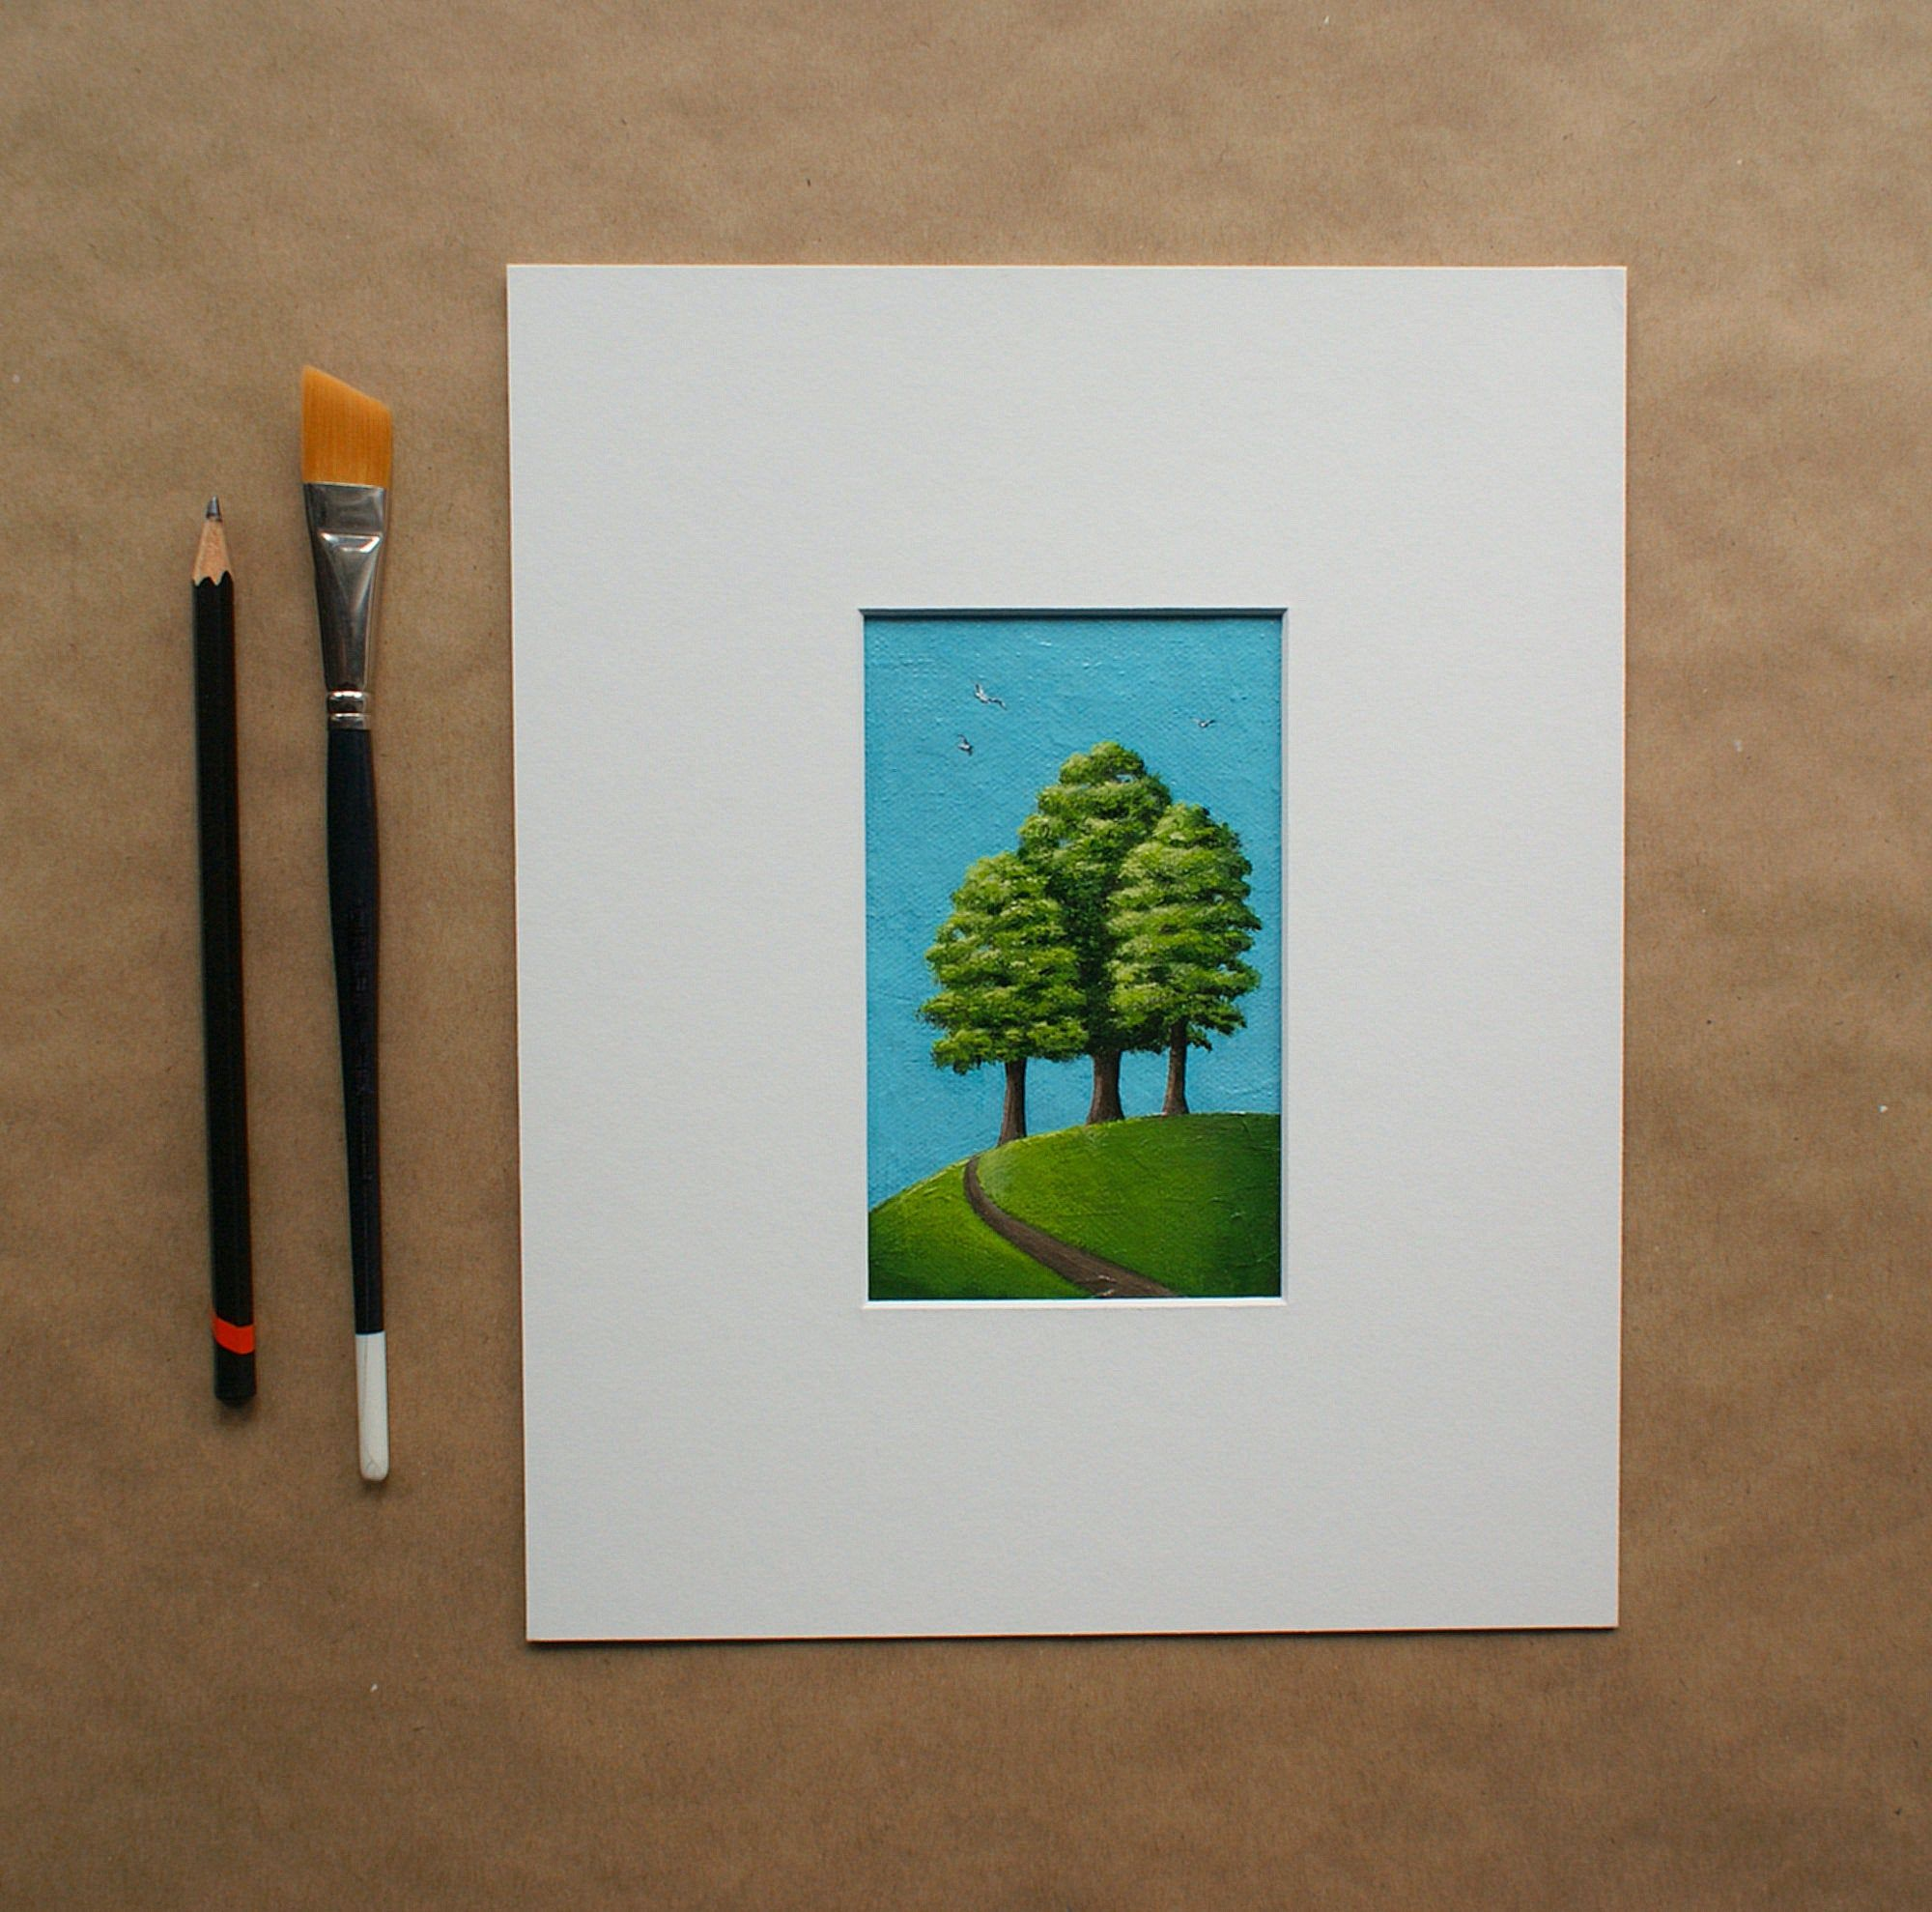 Small Original Artwork Tree Painting Green Trees Art Small Wall Art Nature Painting Green And Blue Art Art Within A 10x8 Inches Mount In 2020 Tree Painting Small Wall Art Nature Paintings